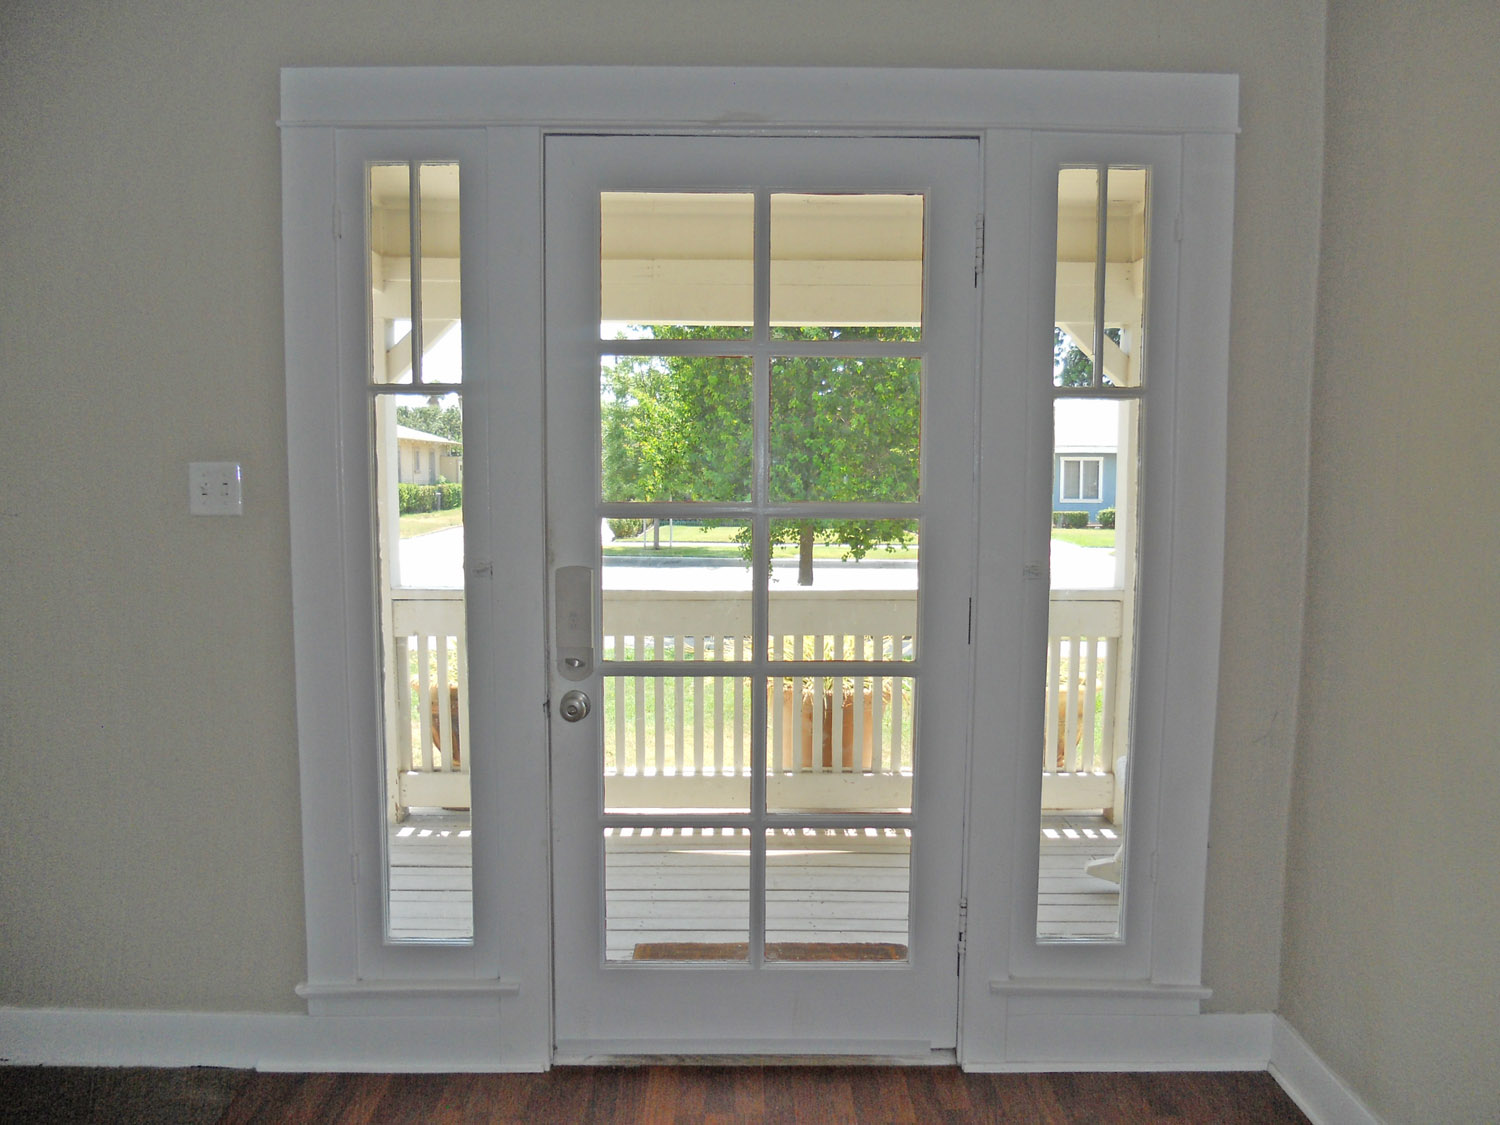 Charming front door overlooking covered front porch.